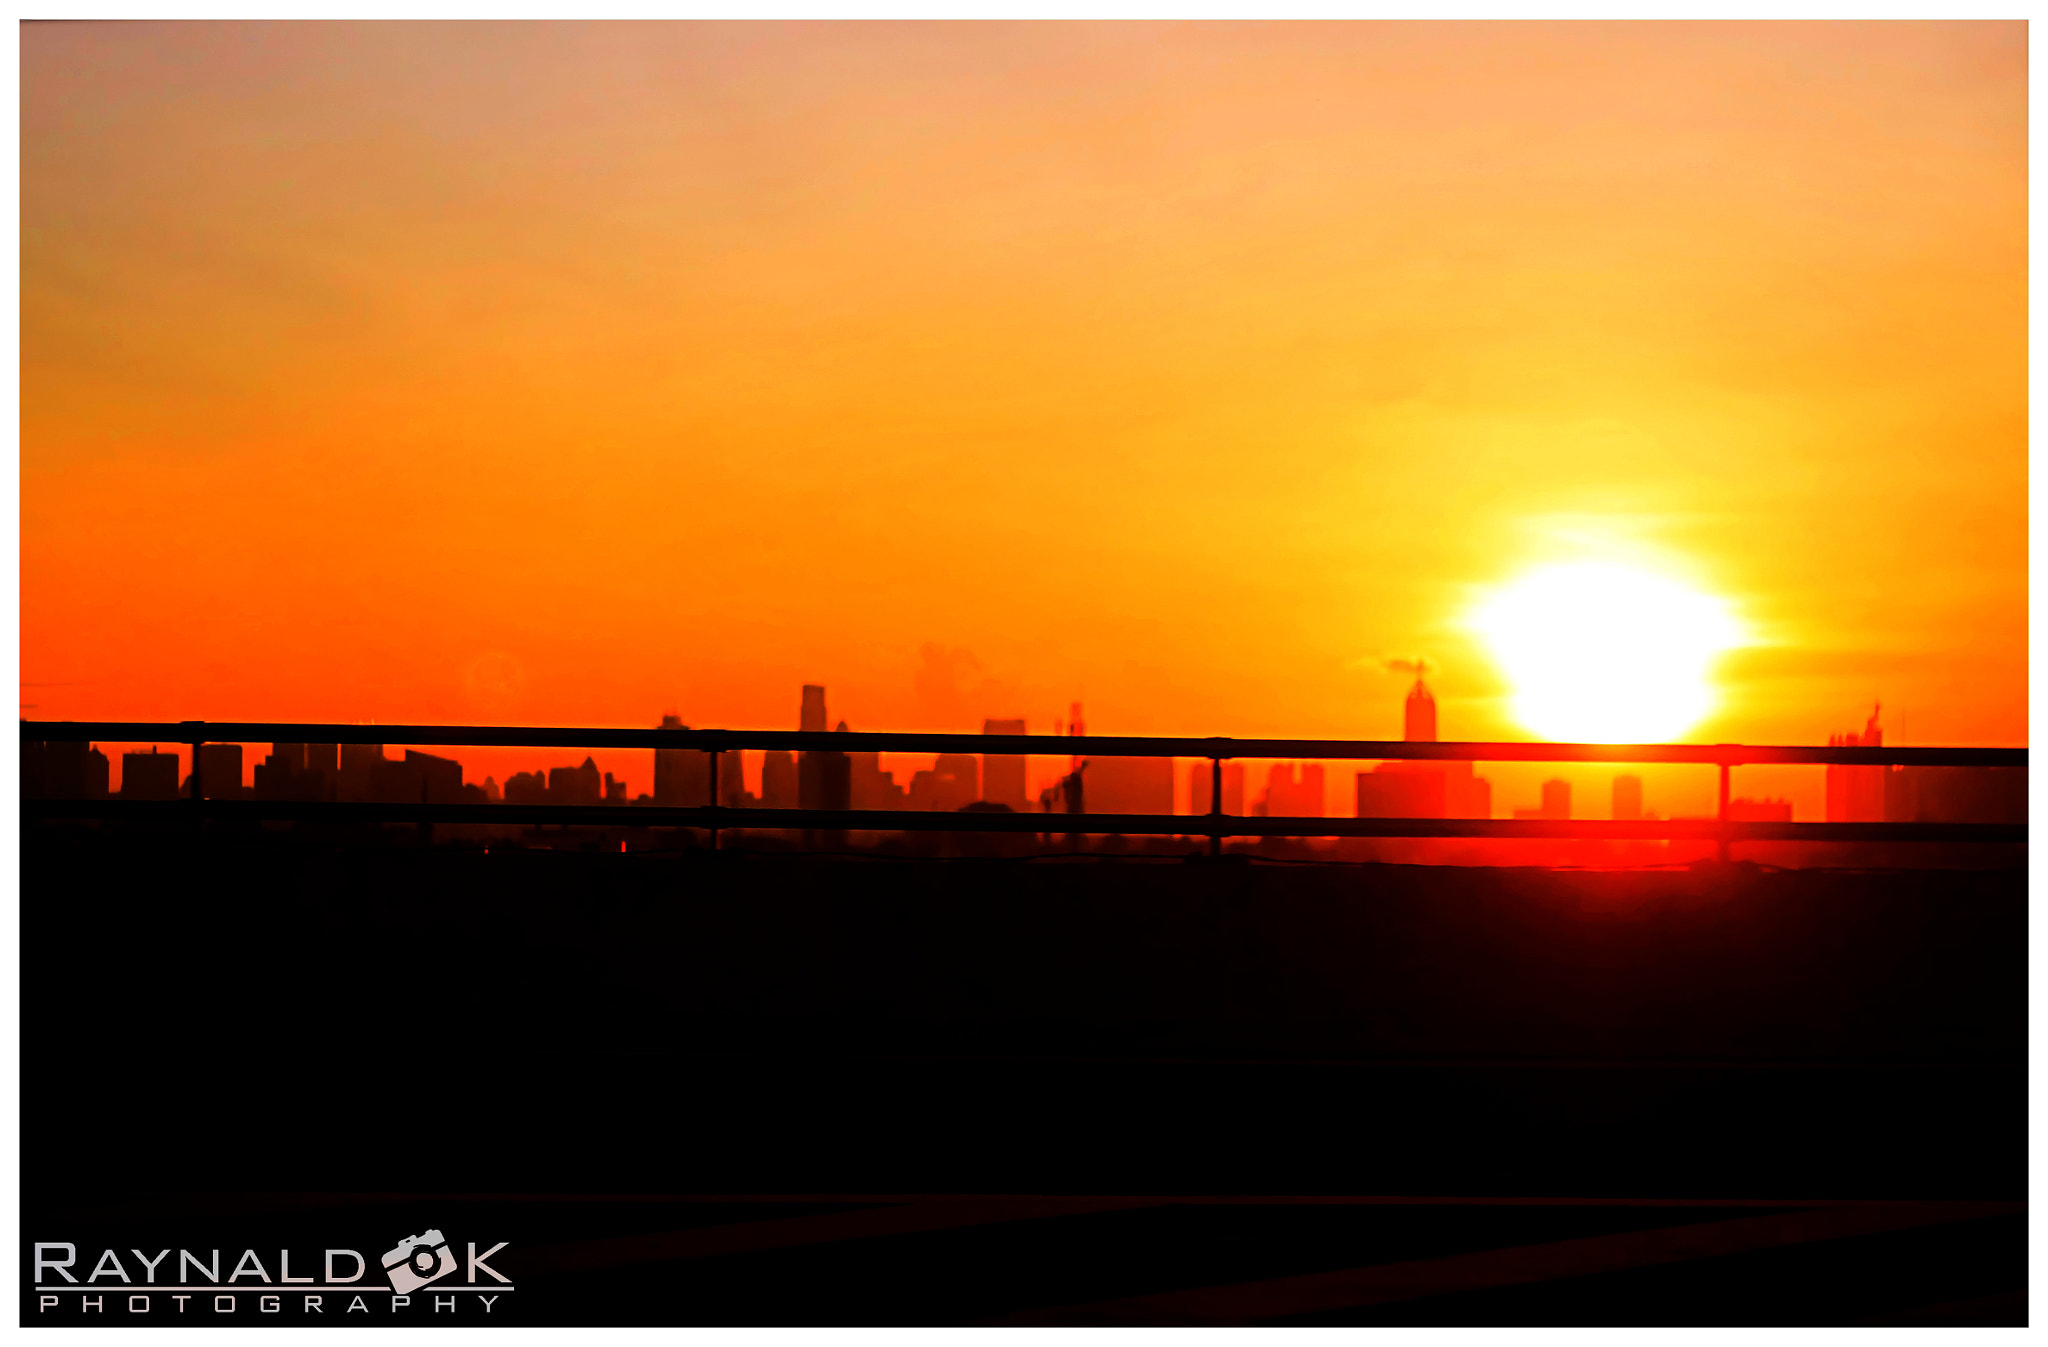 Photograph Sunset On The Street by Raynald Kartawan on 500px